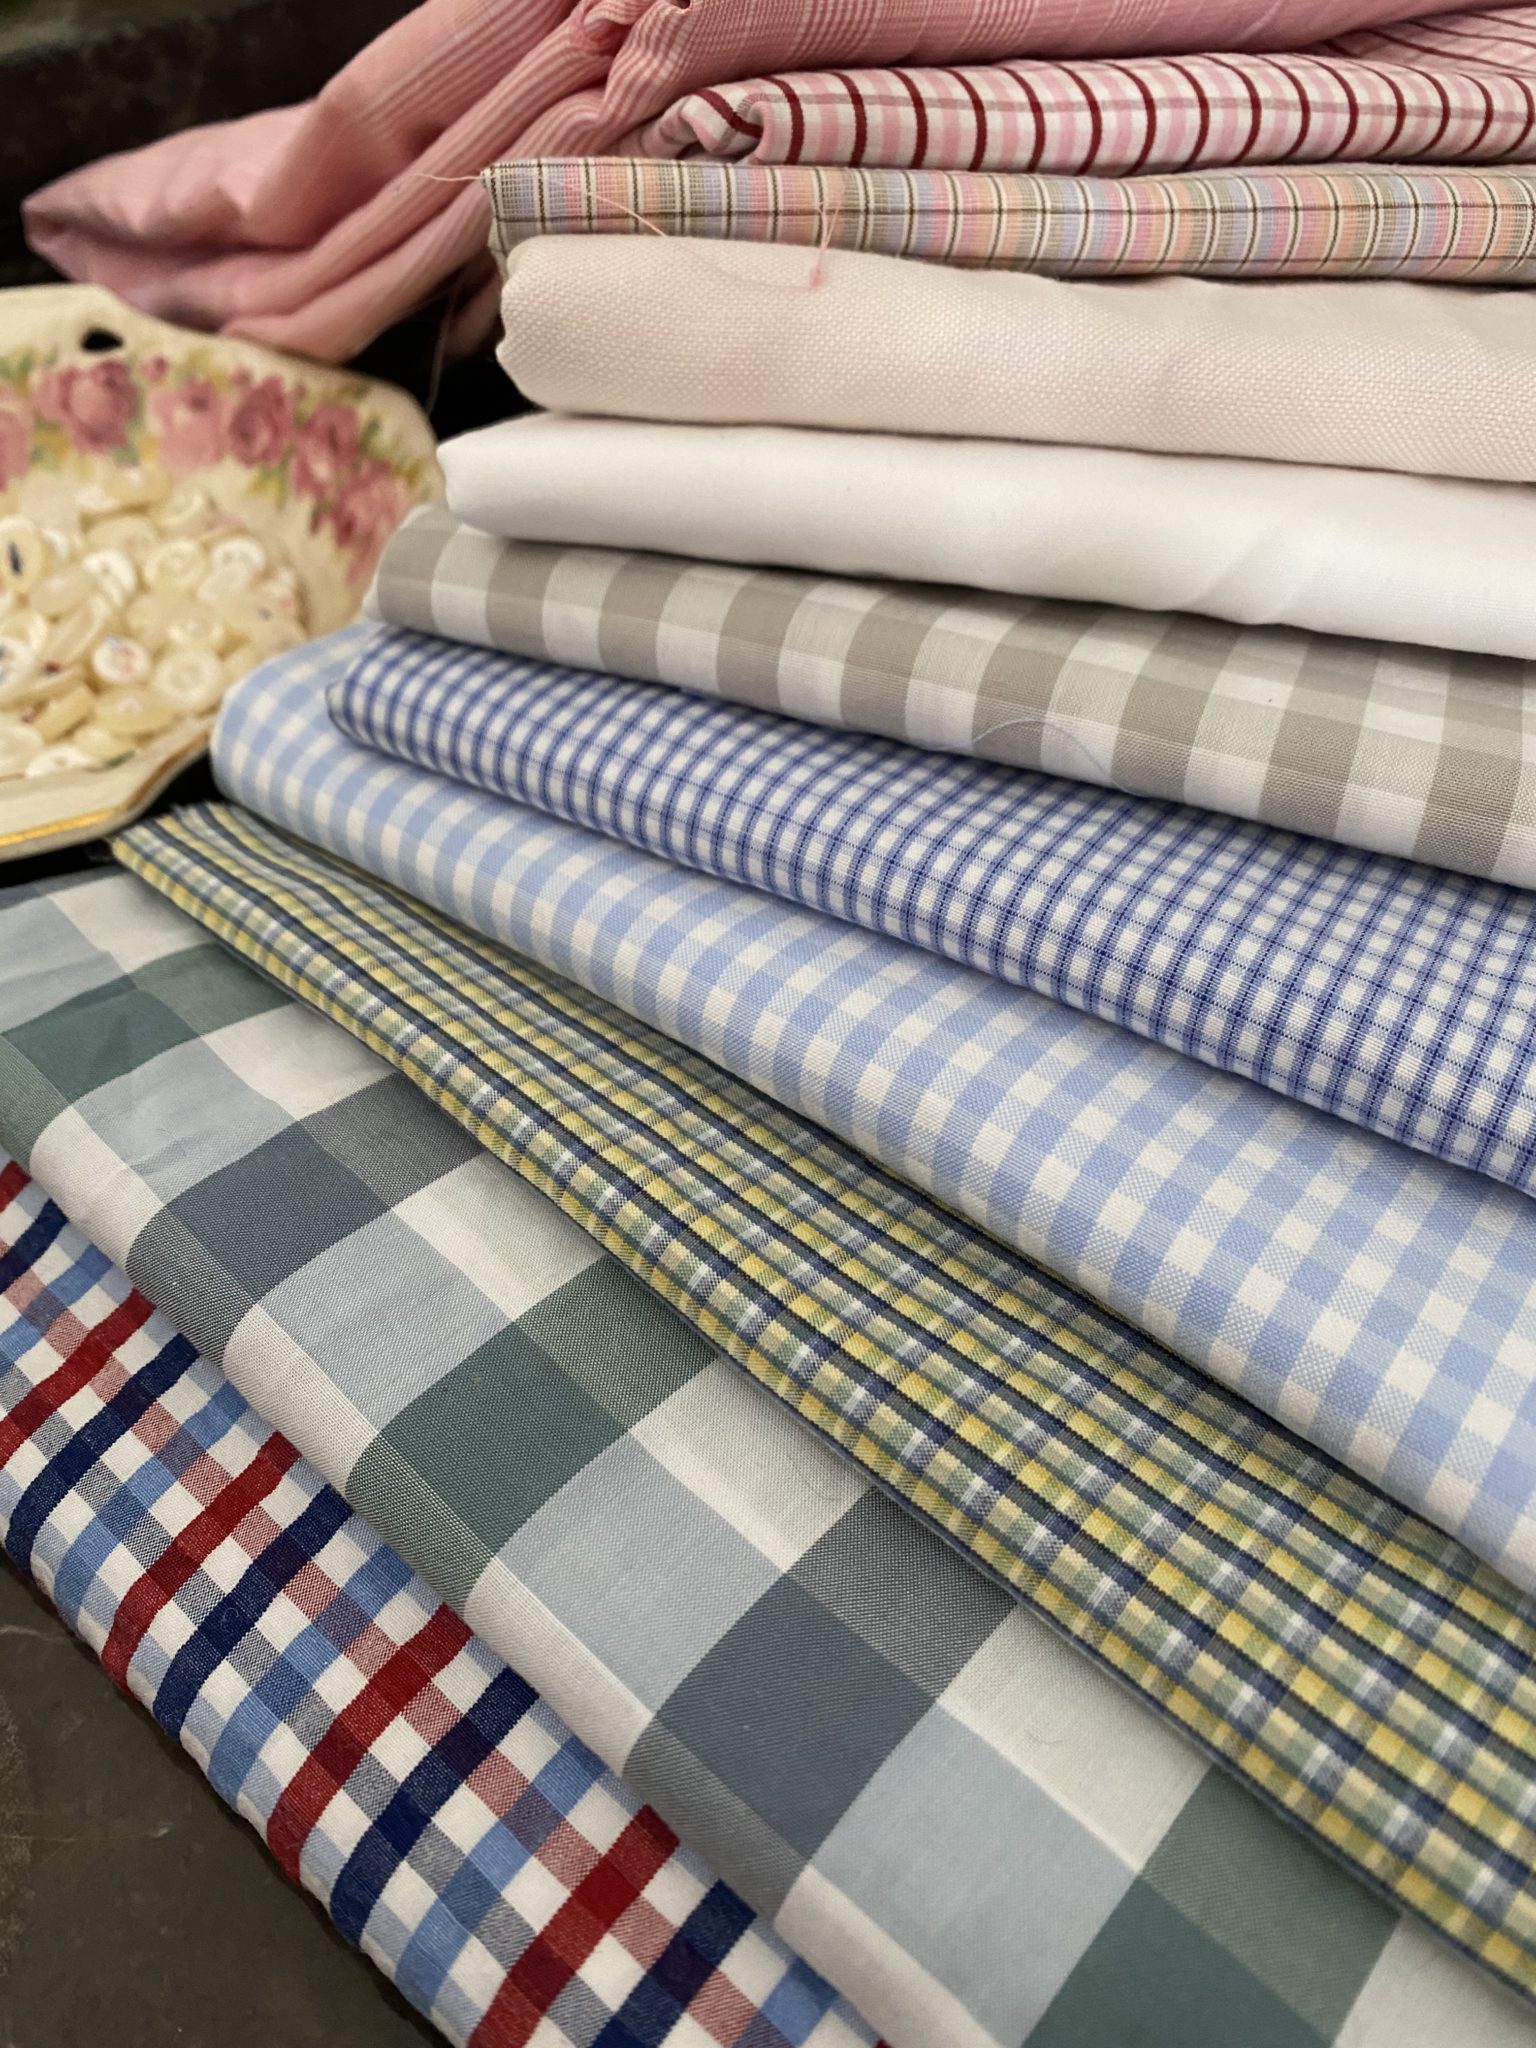 Get Shirty susies-scraps.com Make Quilting Fabric from Mens Shirts